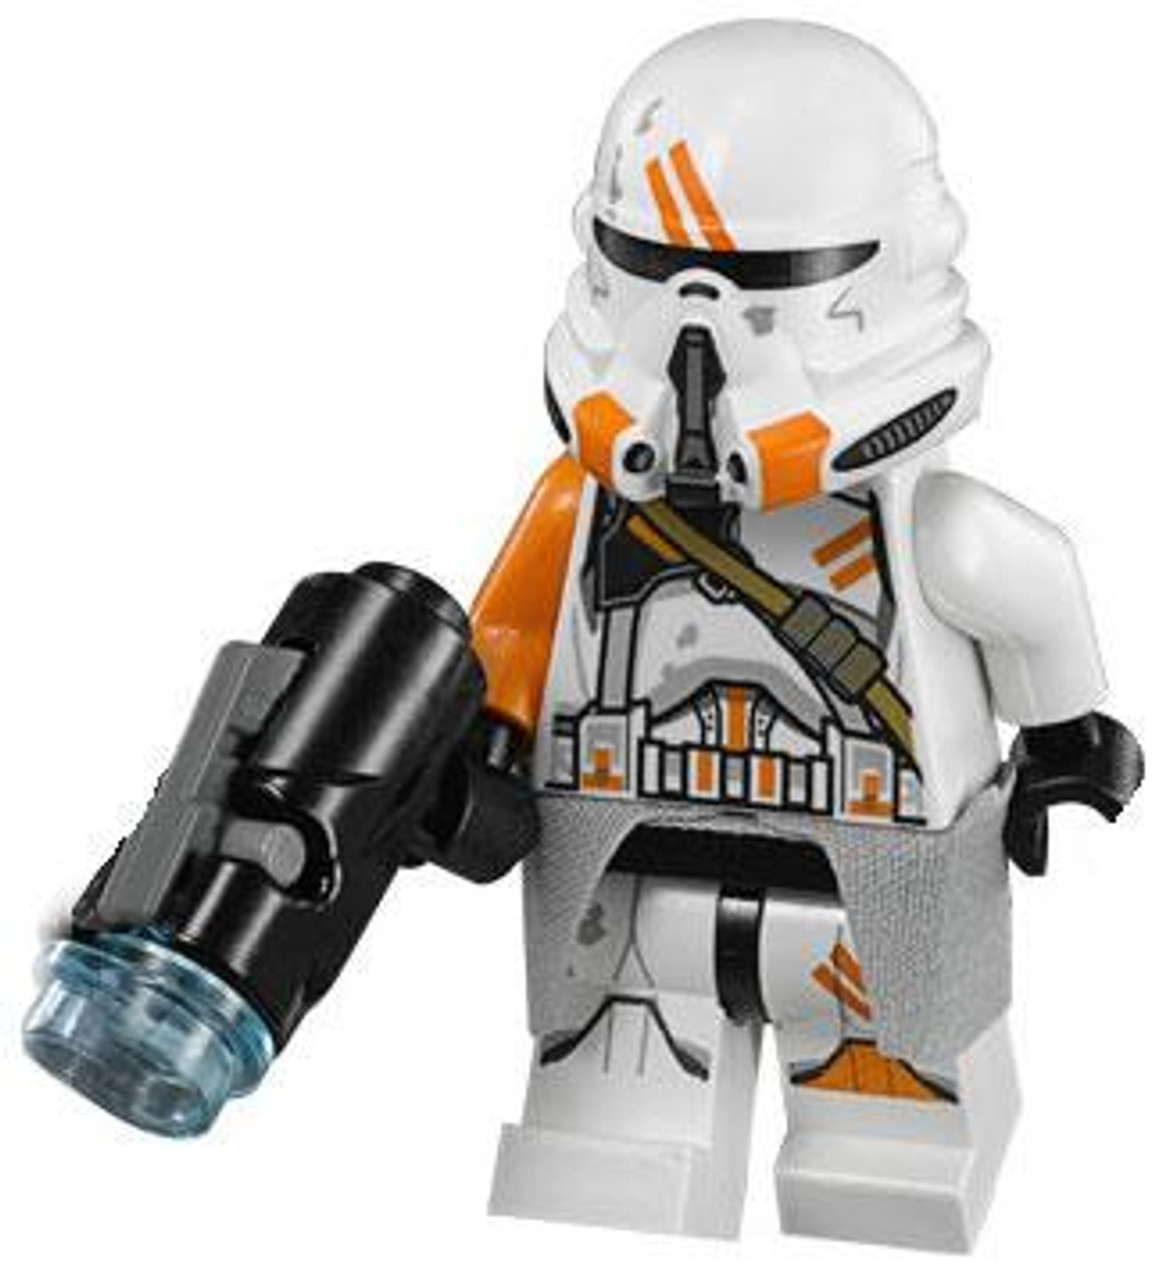 LEGO Star Wars Loose Utapau Airborne Clone Trooper Minifigure [Loose]